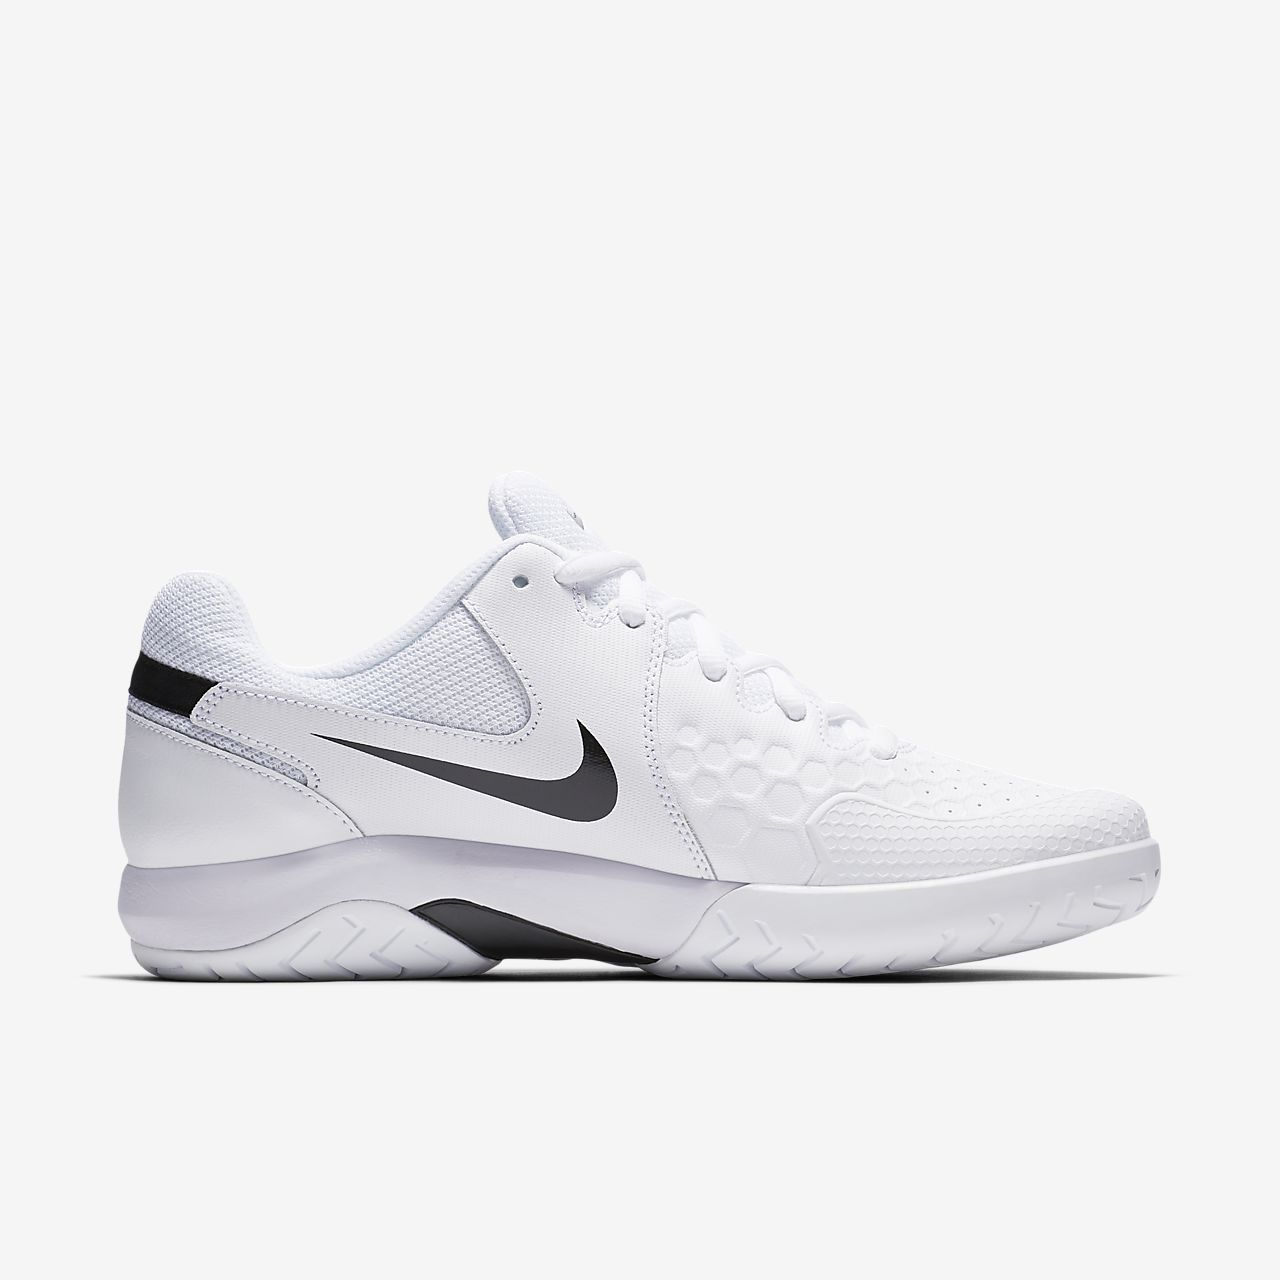 fe29b1bca88 nikecourt-air-zoom-resistance-hard-court-tennis-shoe-rJTGAGEP.jpg